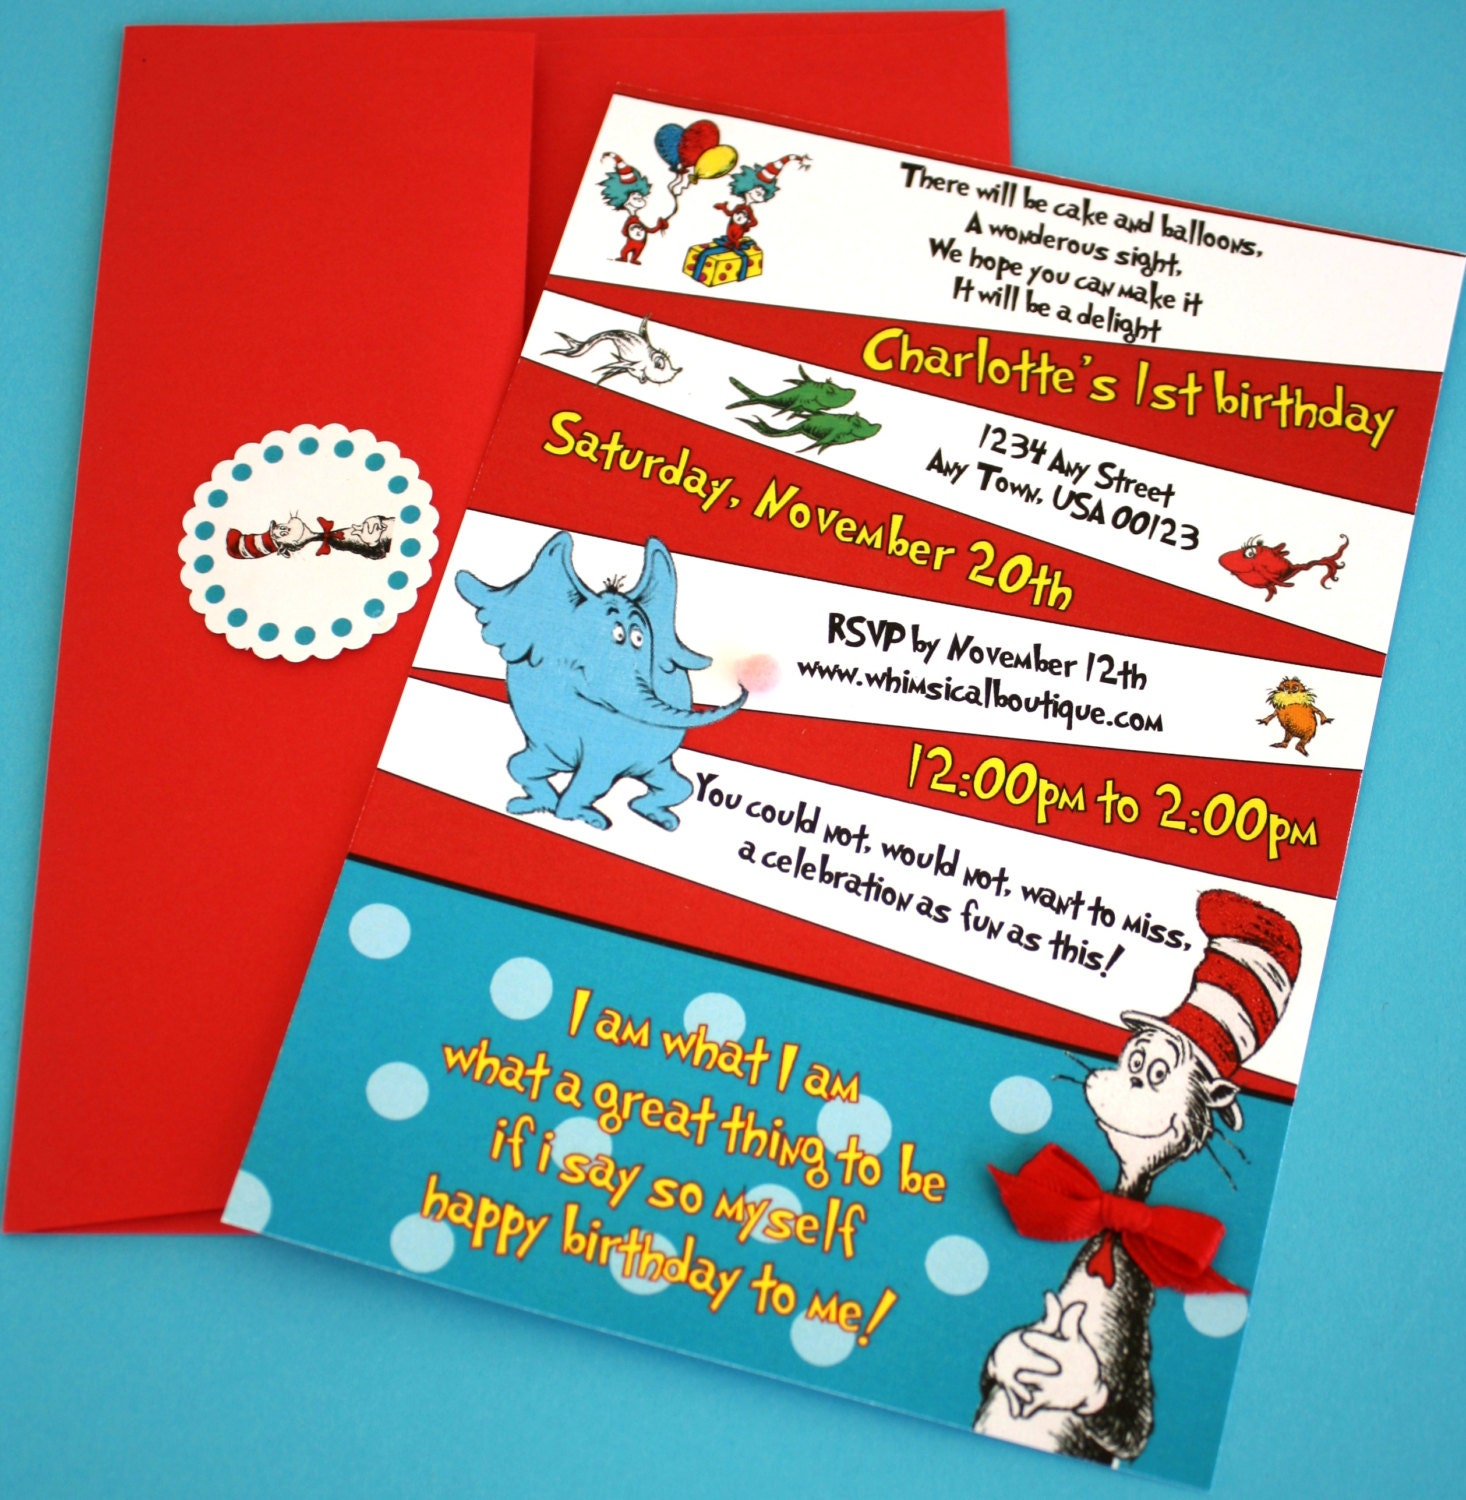 Dr Seuss Baby Shower Invitation Template is amazing invitation design